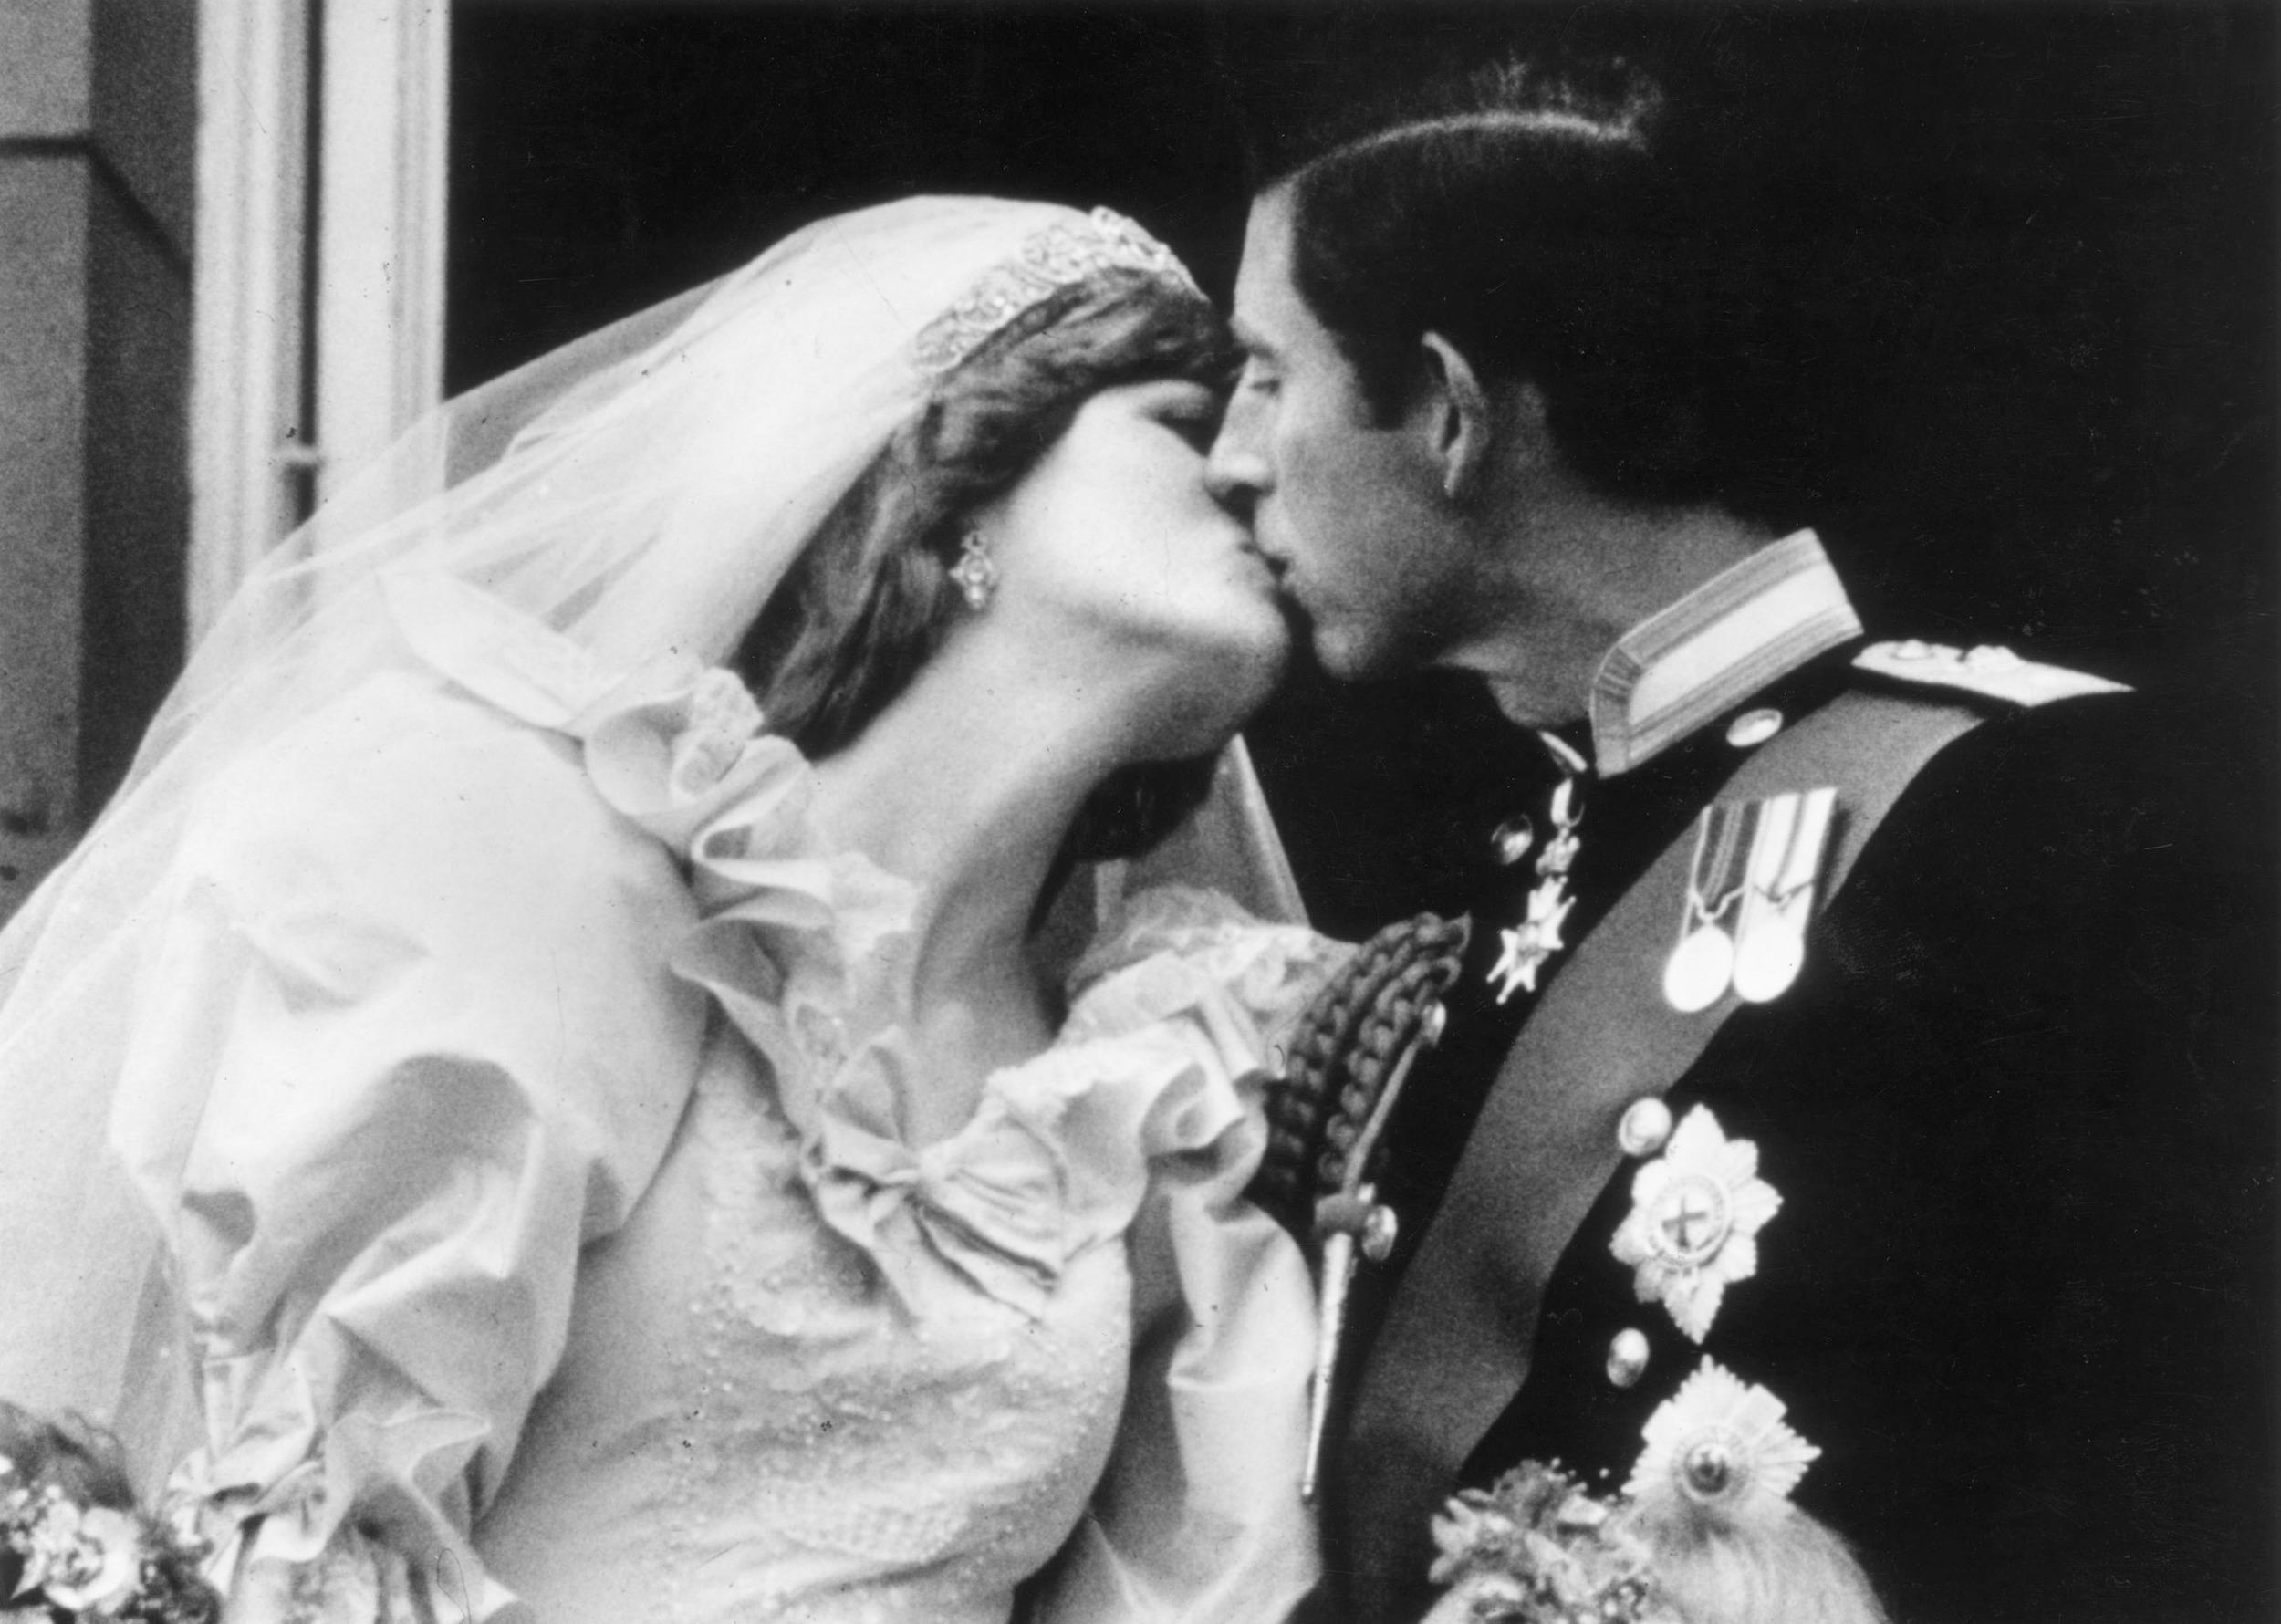 Prince Charles, the Prince of Wales kissing his wife, Princess Diana (1961 - 1997), on the balcony of Buckingham Palace after their marriage.